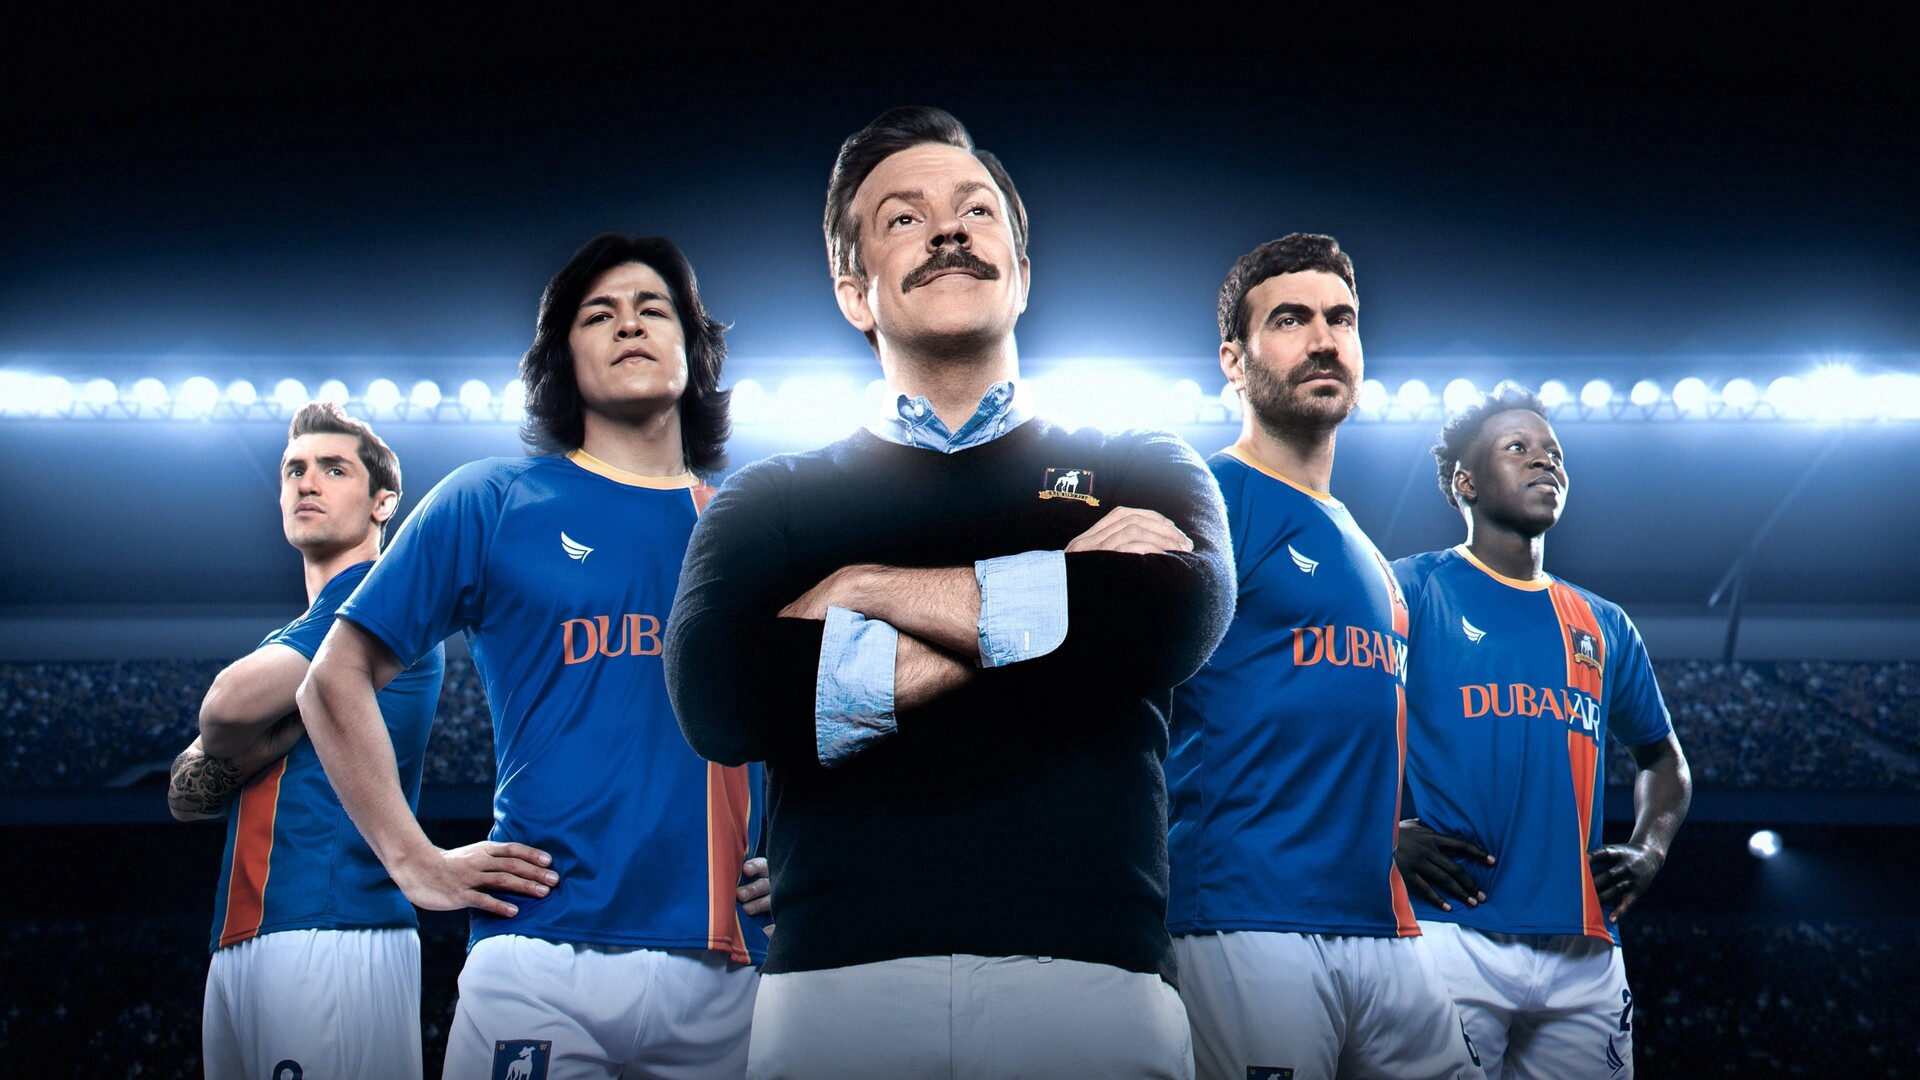 Ted Lasso season 2 cast, including Jason Sudeikis, Brett Goldstein and Phil Dunster